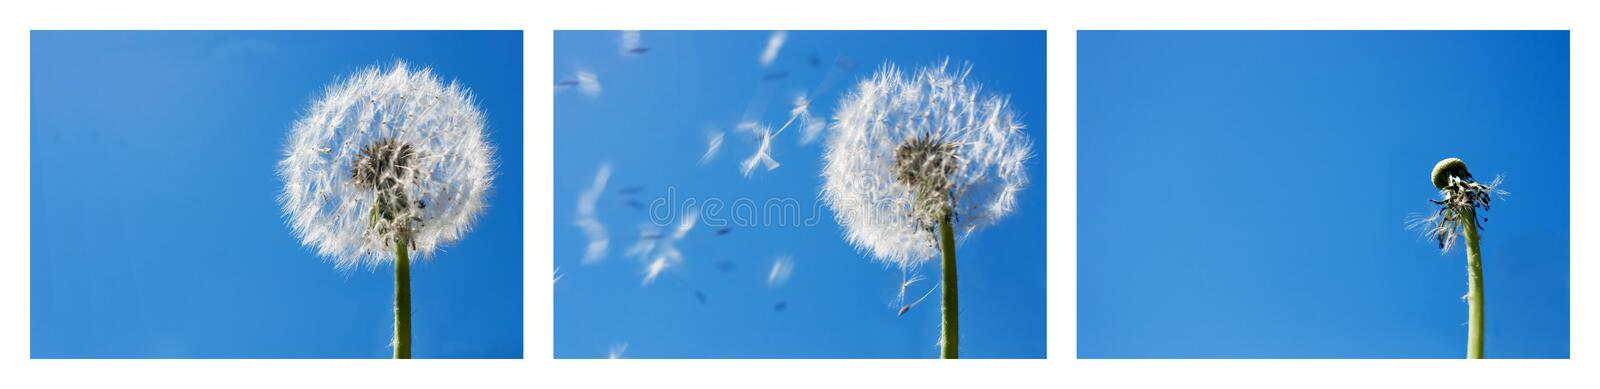 Dandelion Flying Seeds. Triptych with the sequence of a dandelion seeds flying in the wind. Blue sky background. Useful for spring themes or - time passing by royalty free stock images